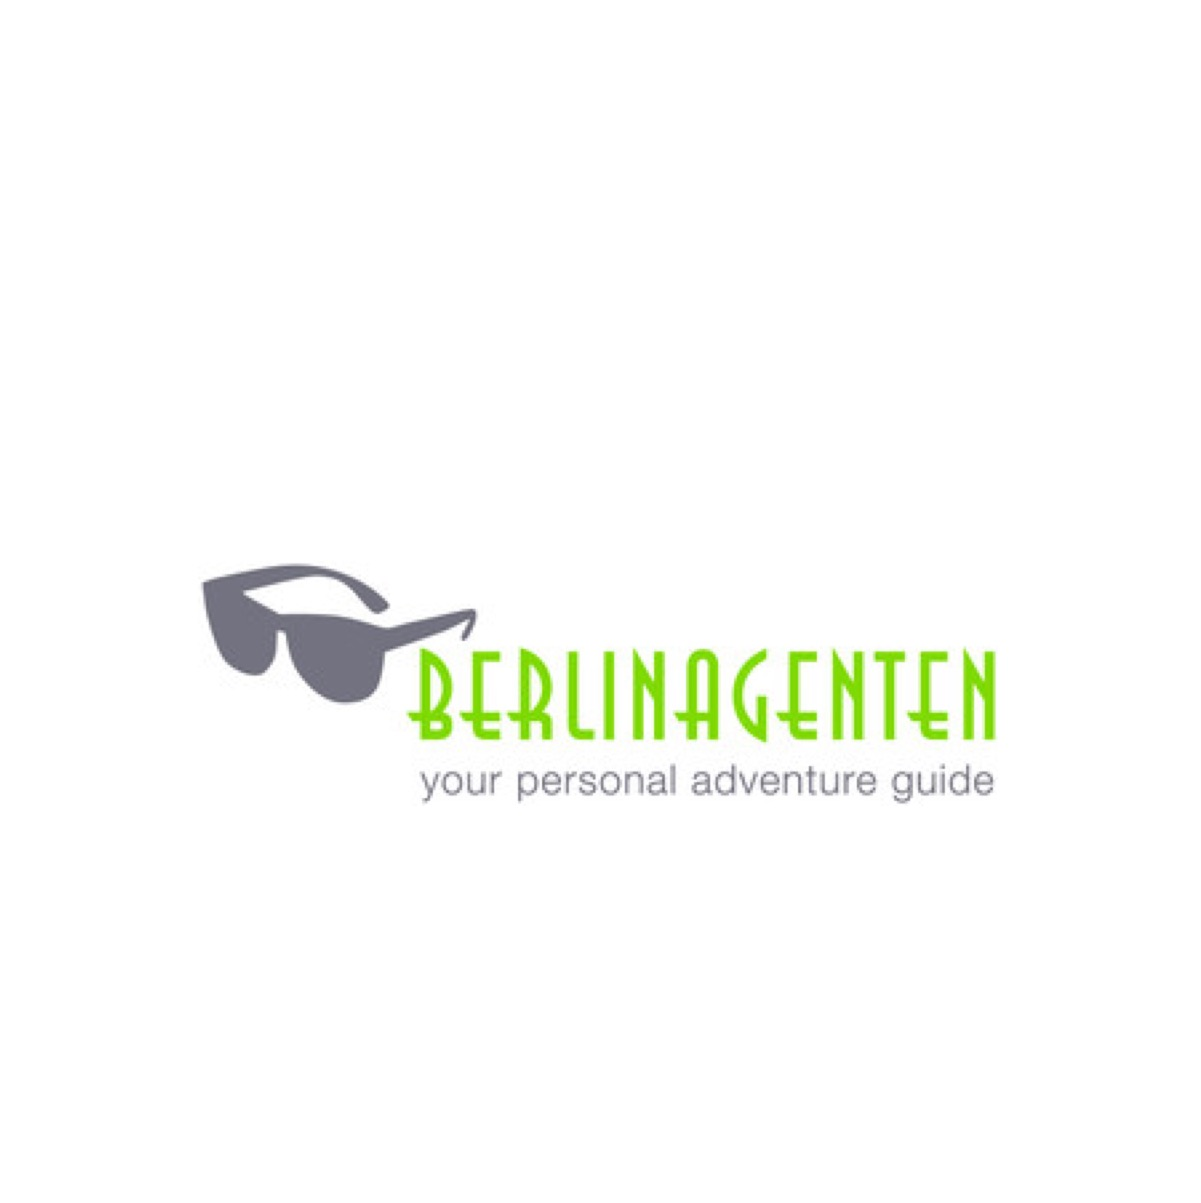 Logo Berlinagenten